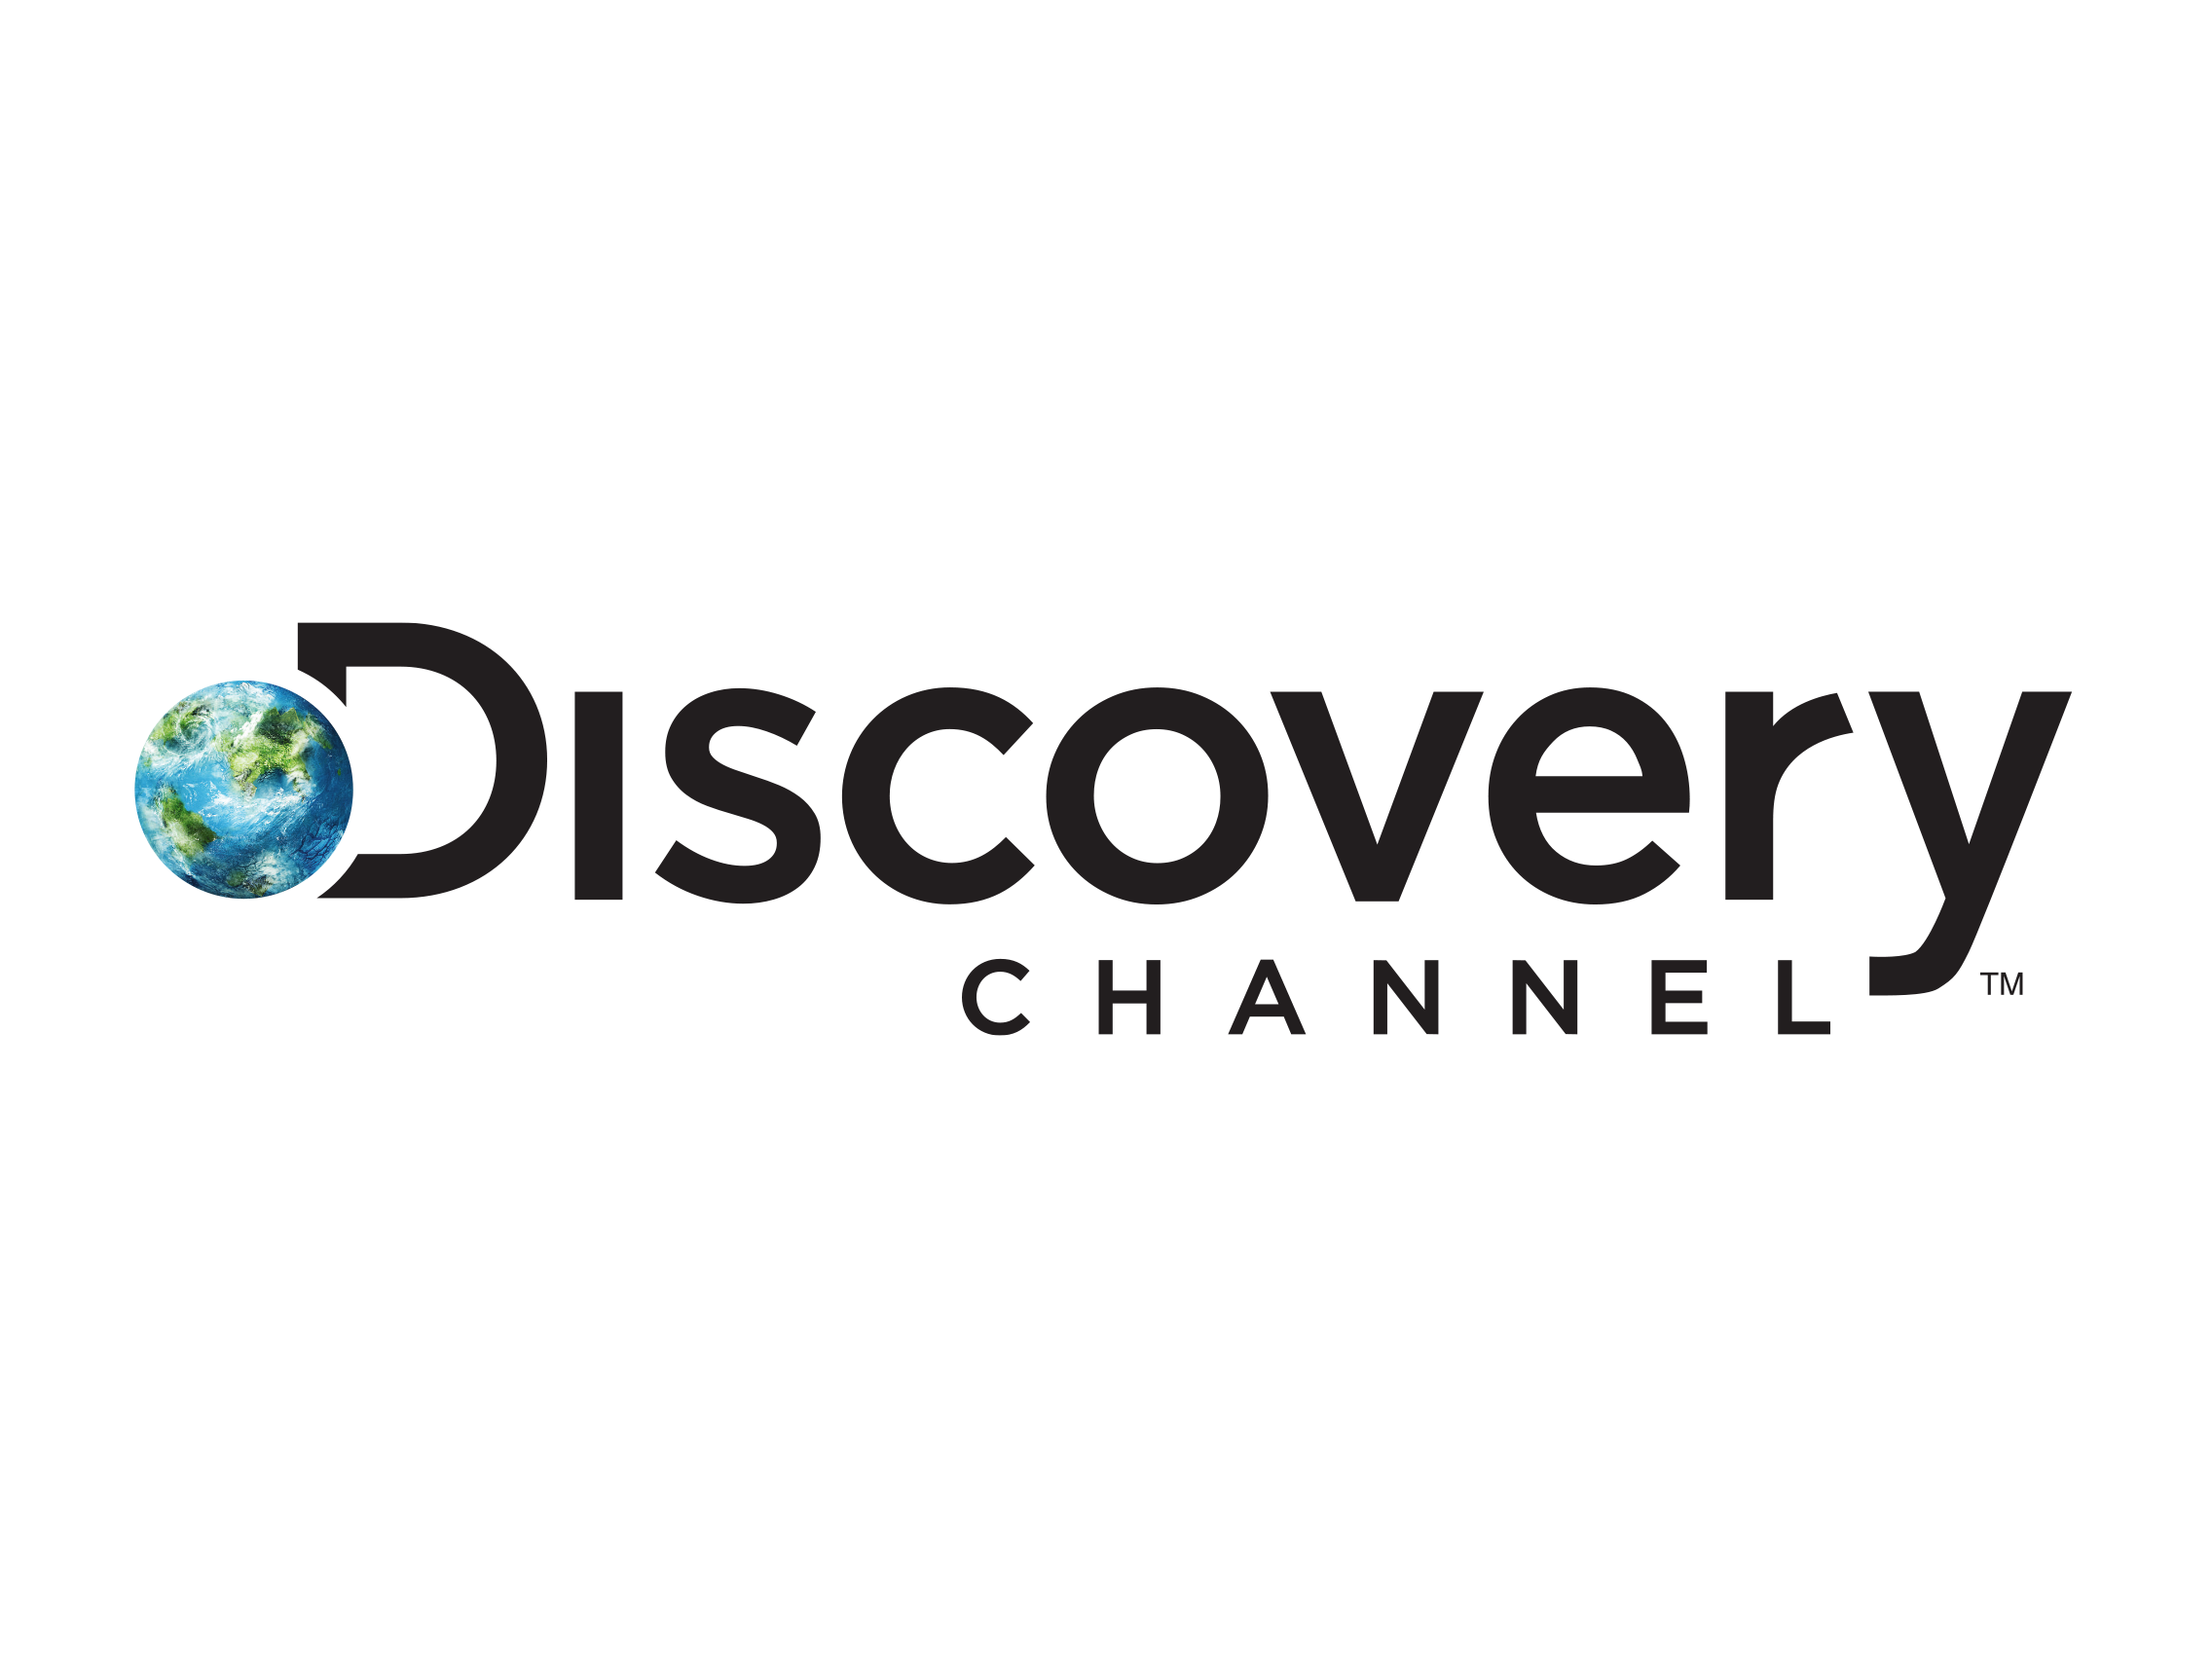 Explore an immersive world with Discovery VR for iOS